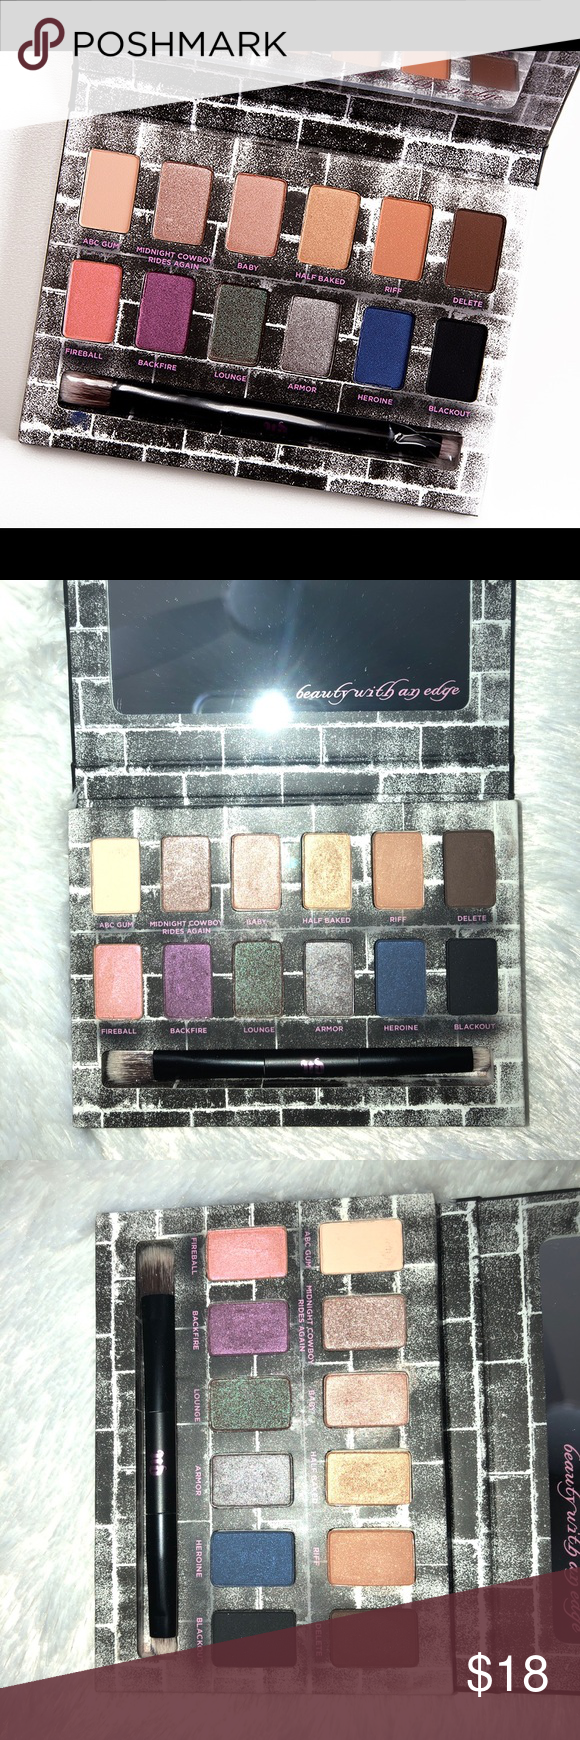 Urban Decay Nocturnal Pallet (barely used) Urban decay